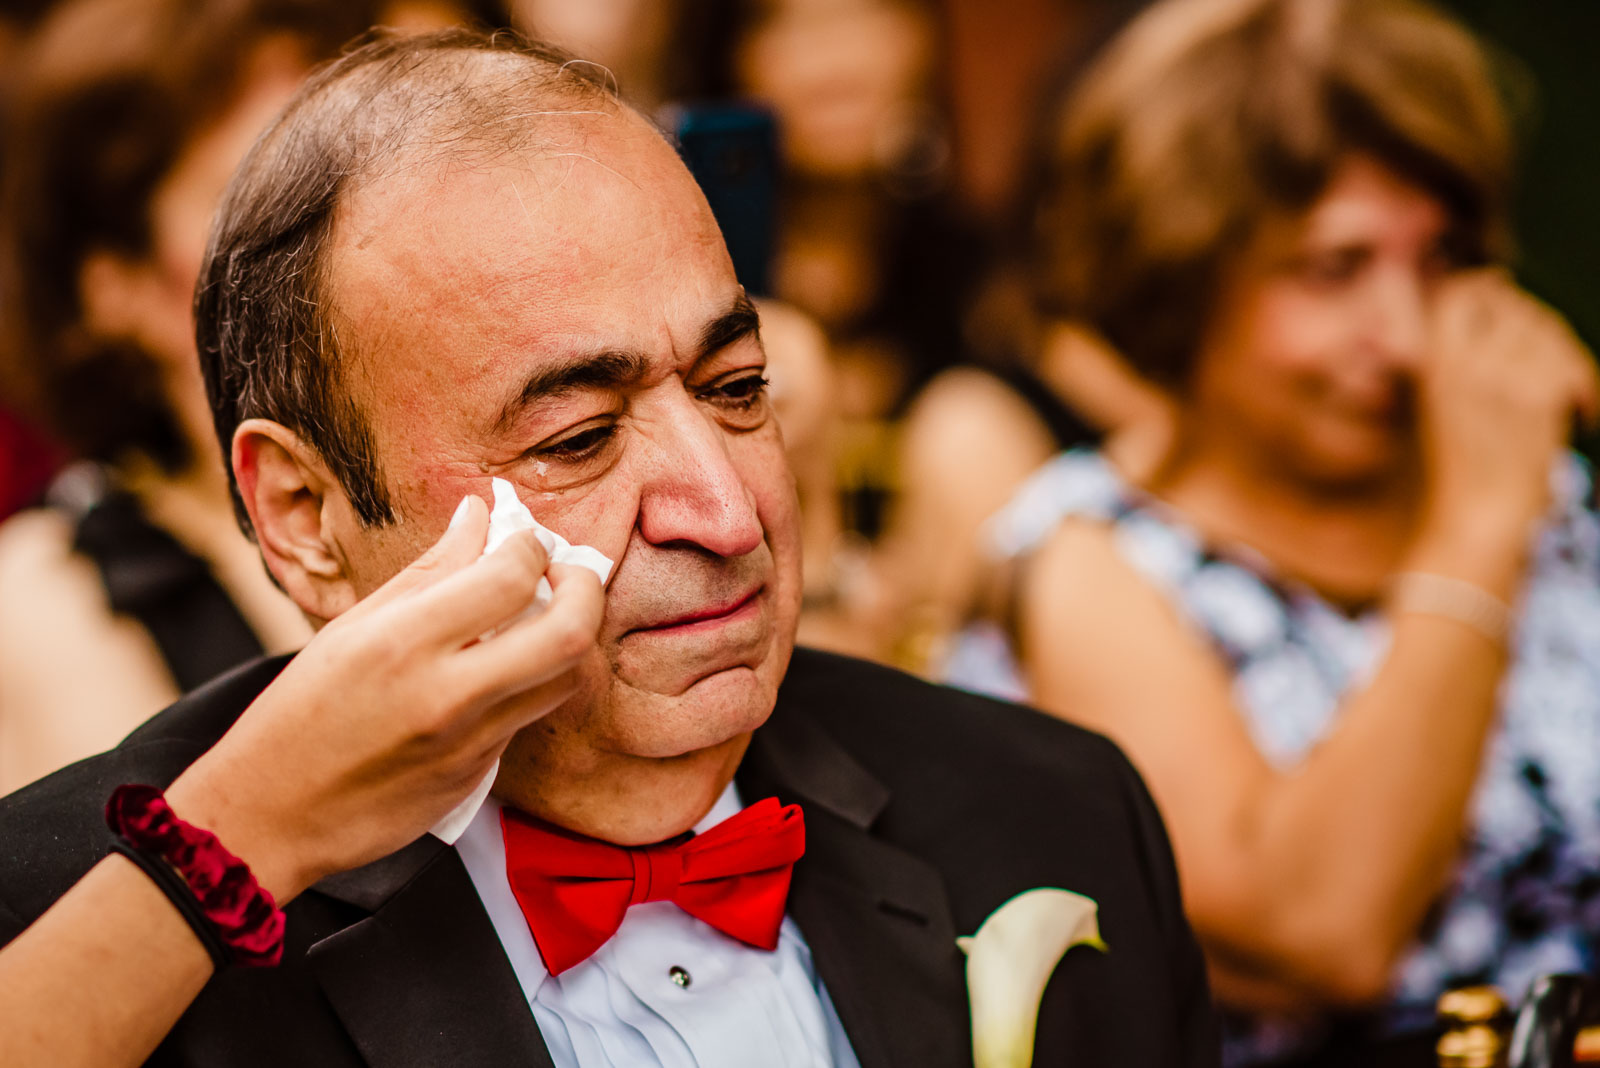 Father of groom sheds a tear